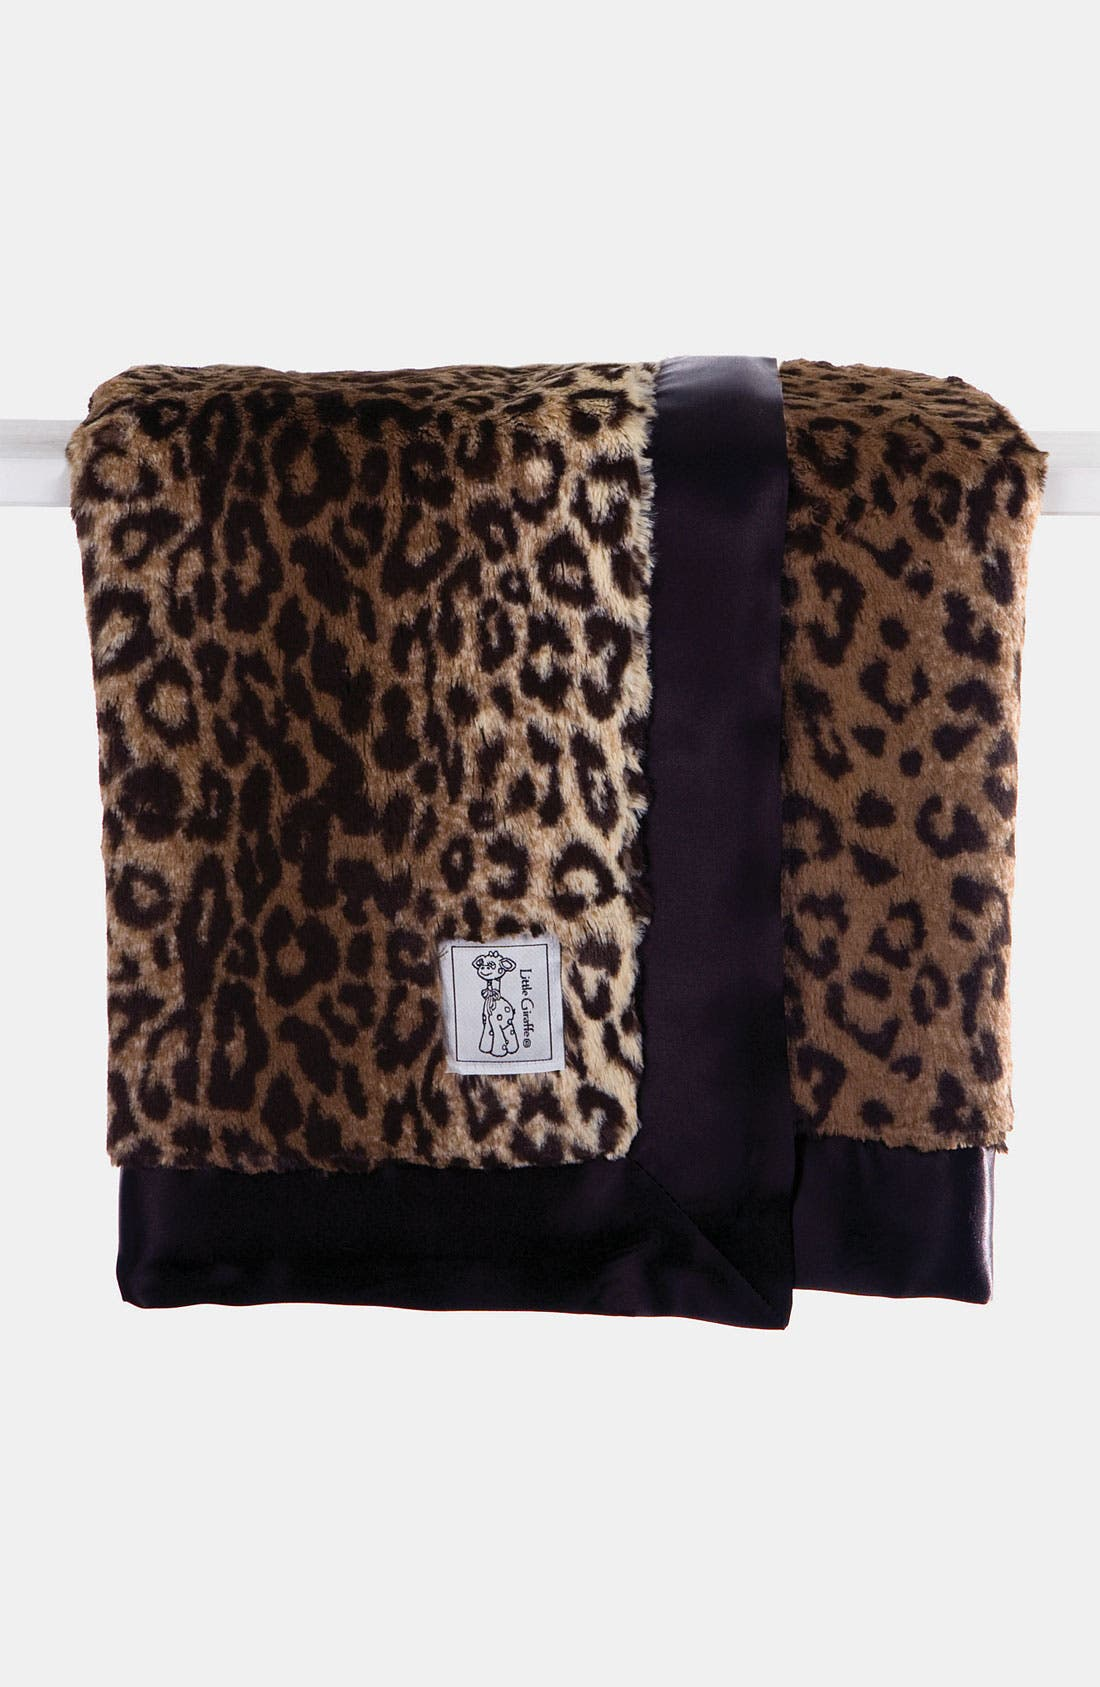 Leopard Print Blanket,                         Main,                         color, 202